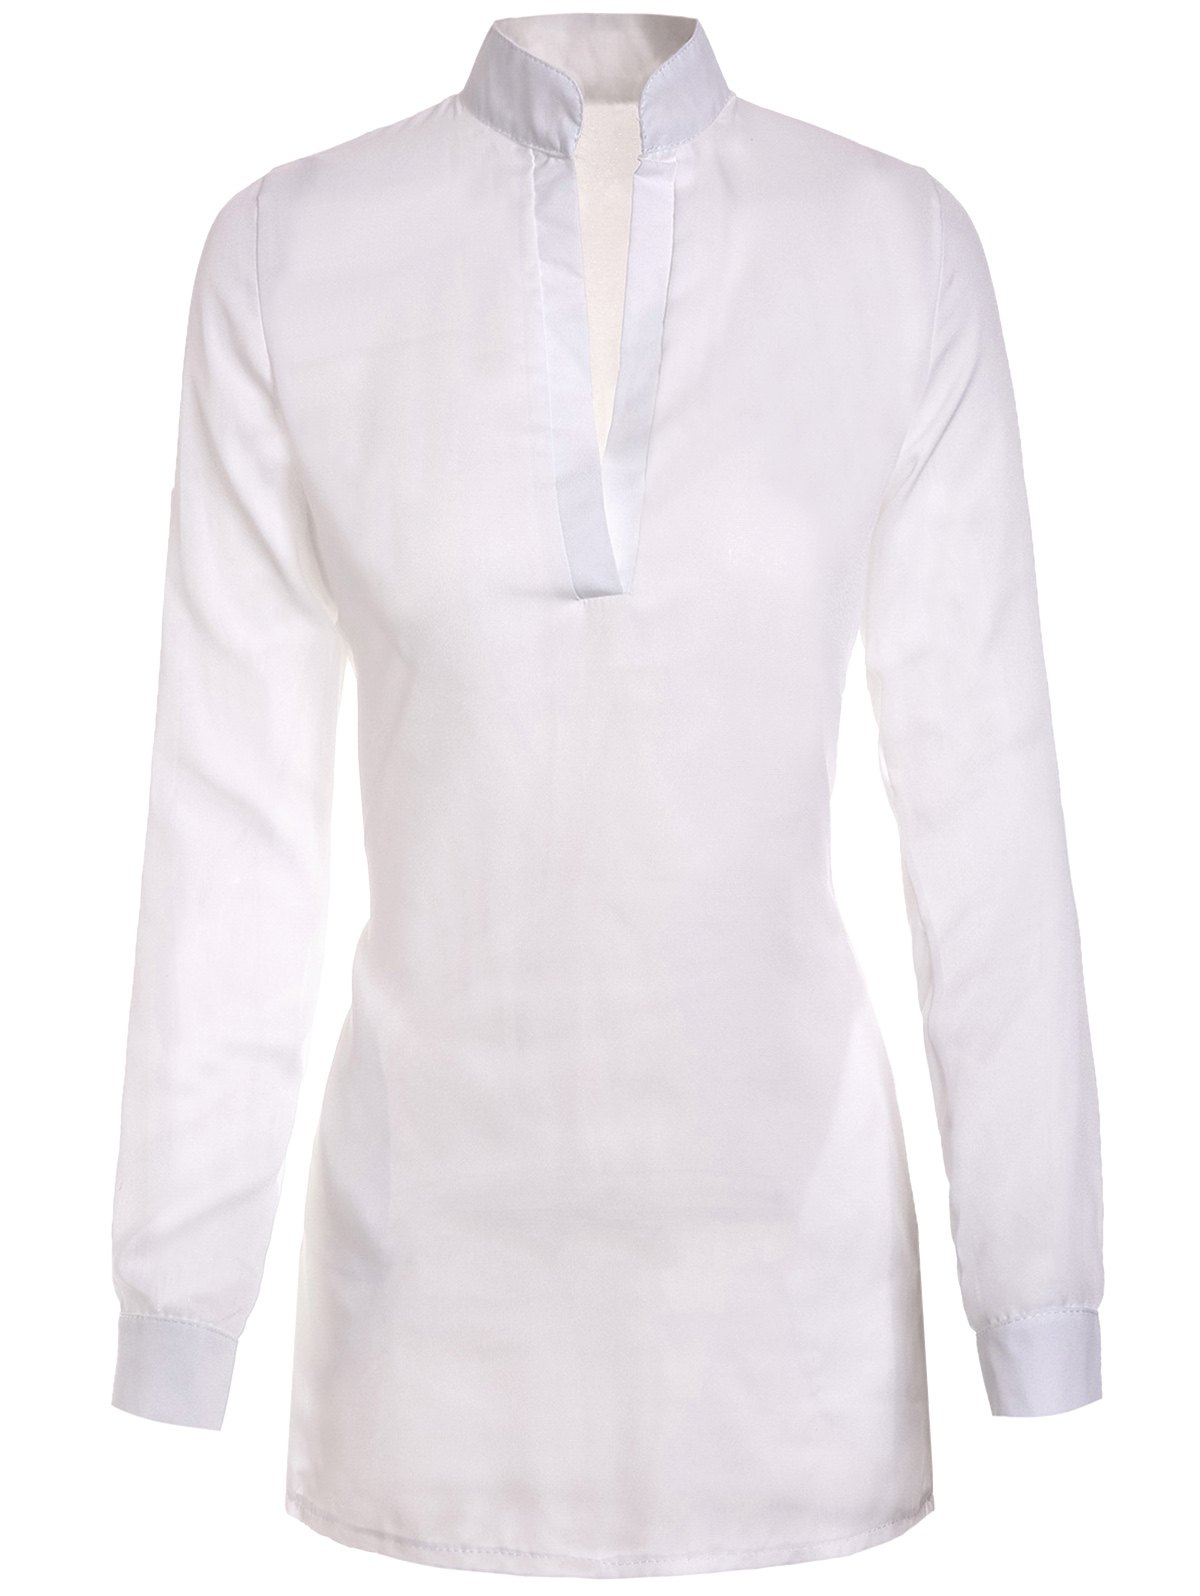 Stylish Plunging Collar Long Sleeve Solid Color Women's Blouse